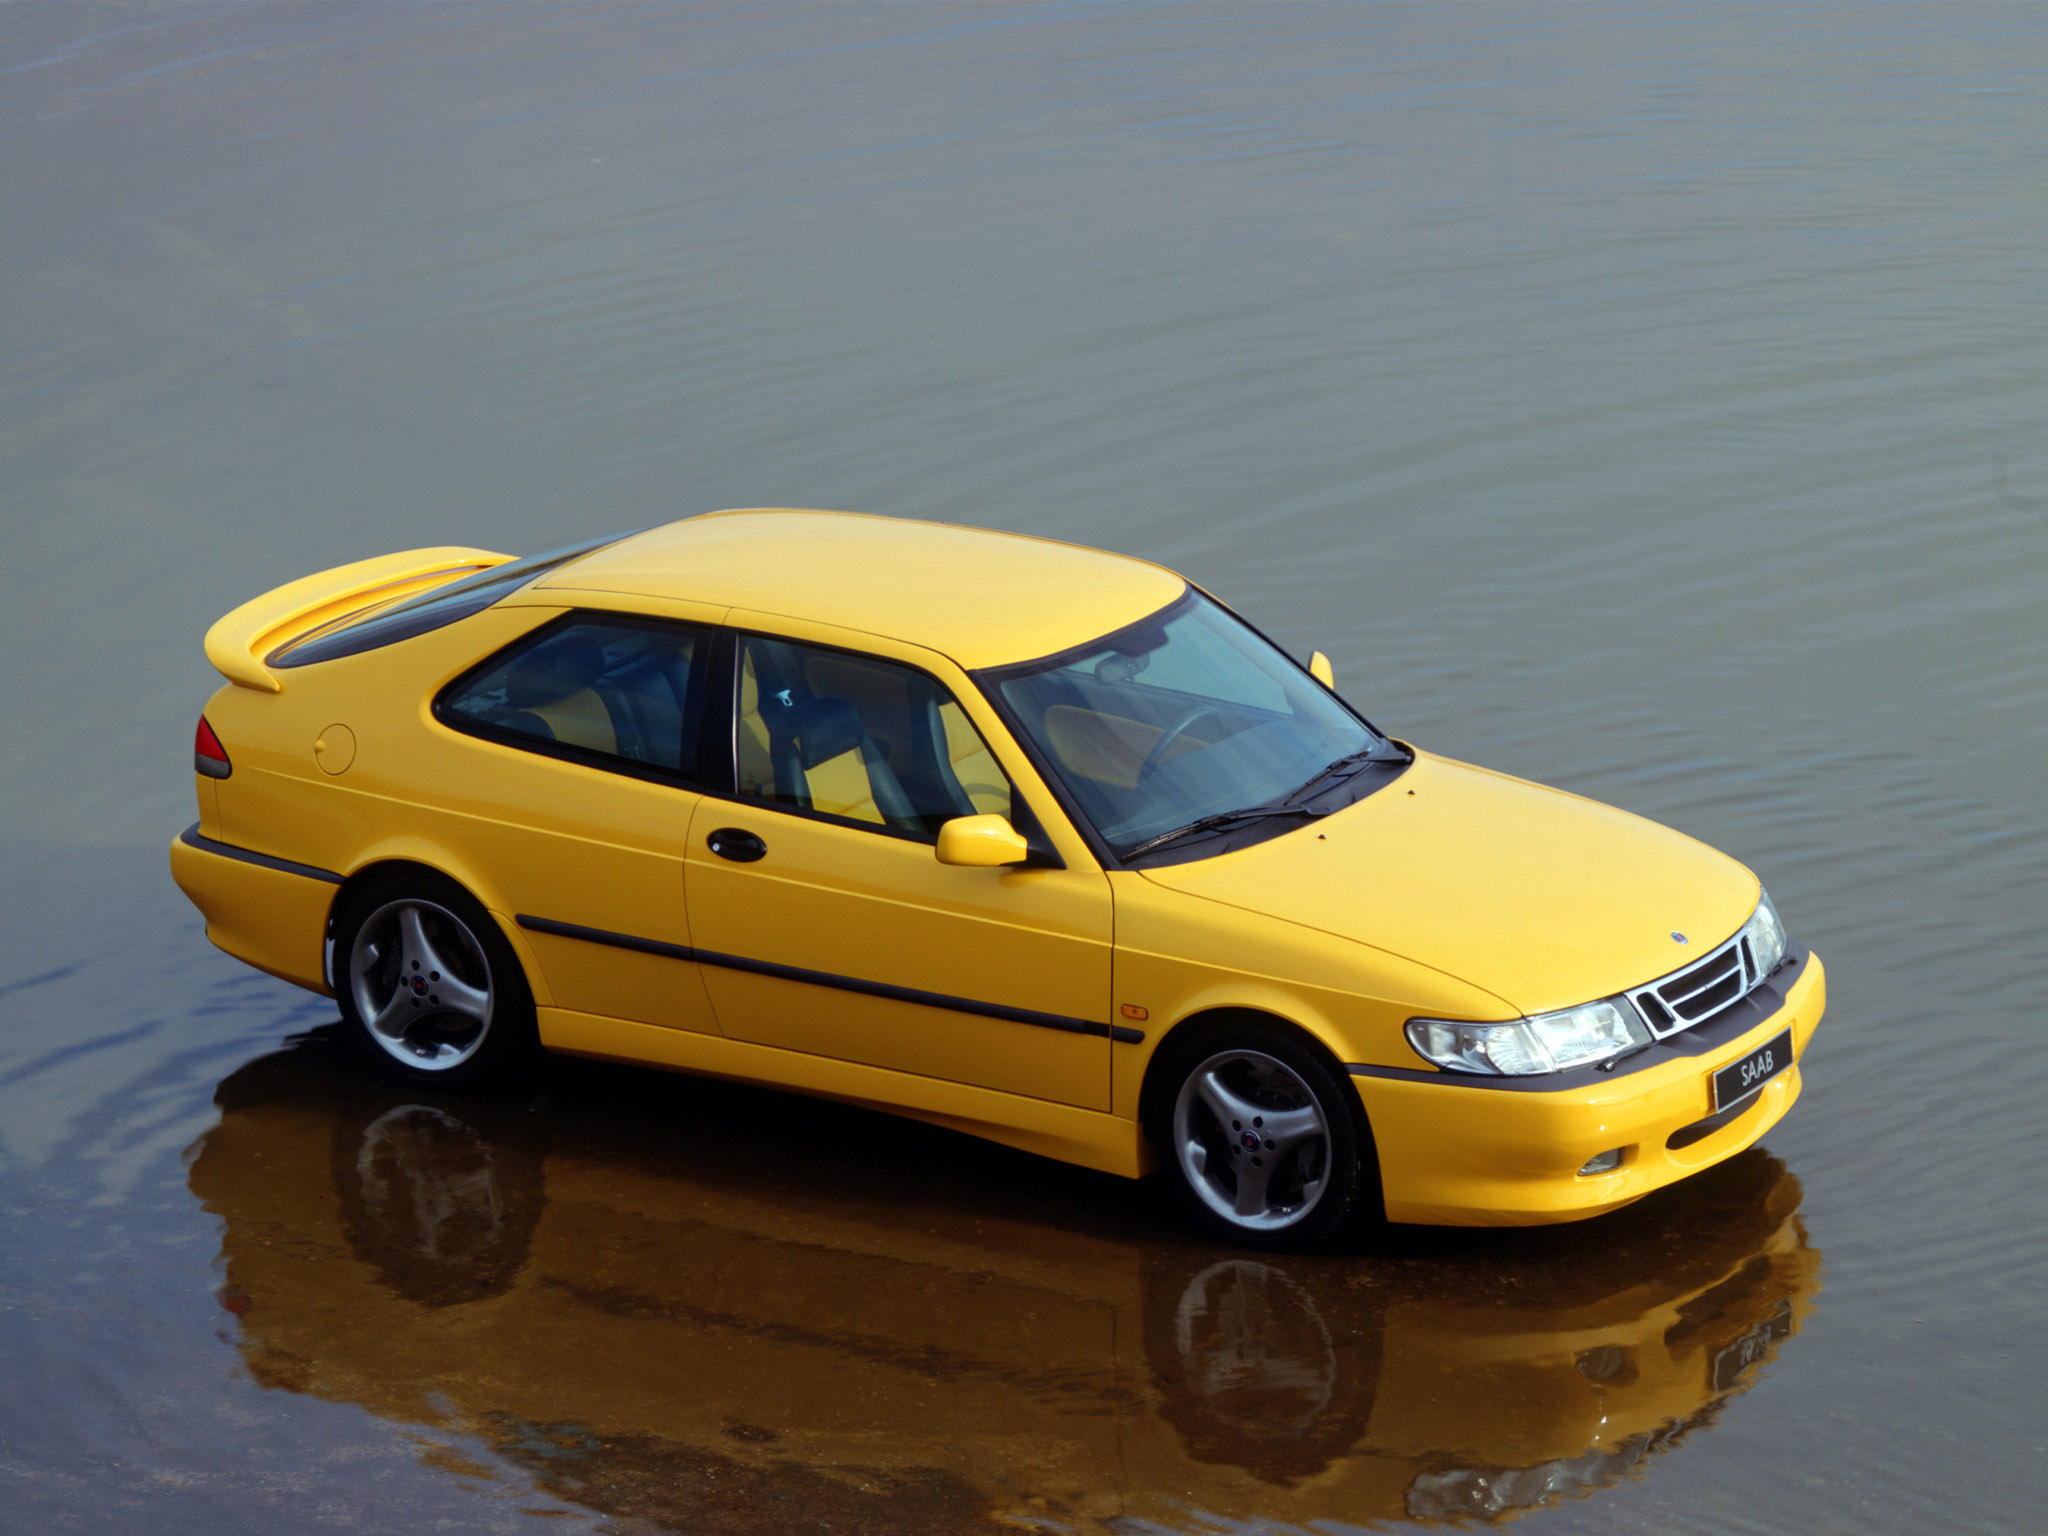 Saab-9-3-Viggen-Coupe-1999-2002-Photo-11